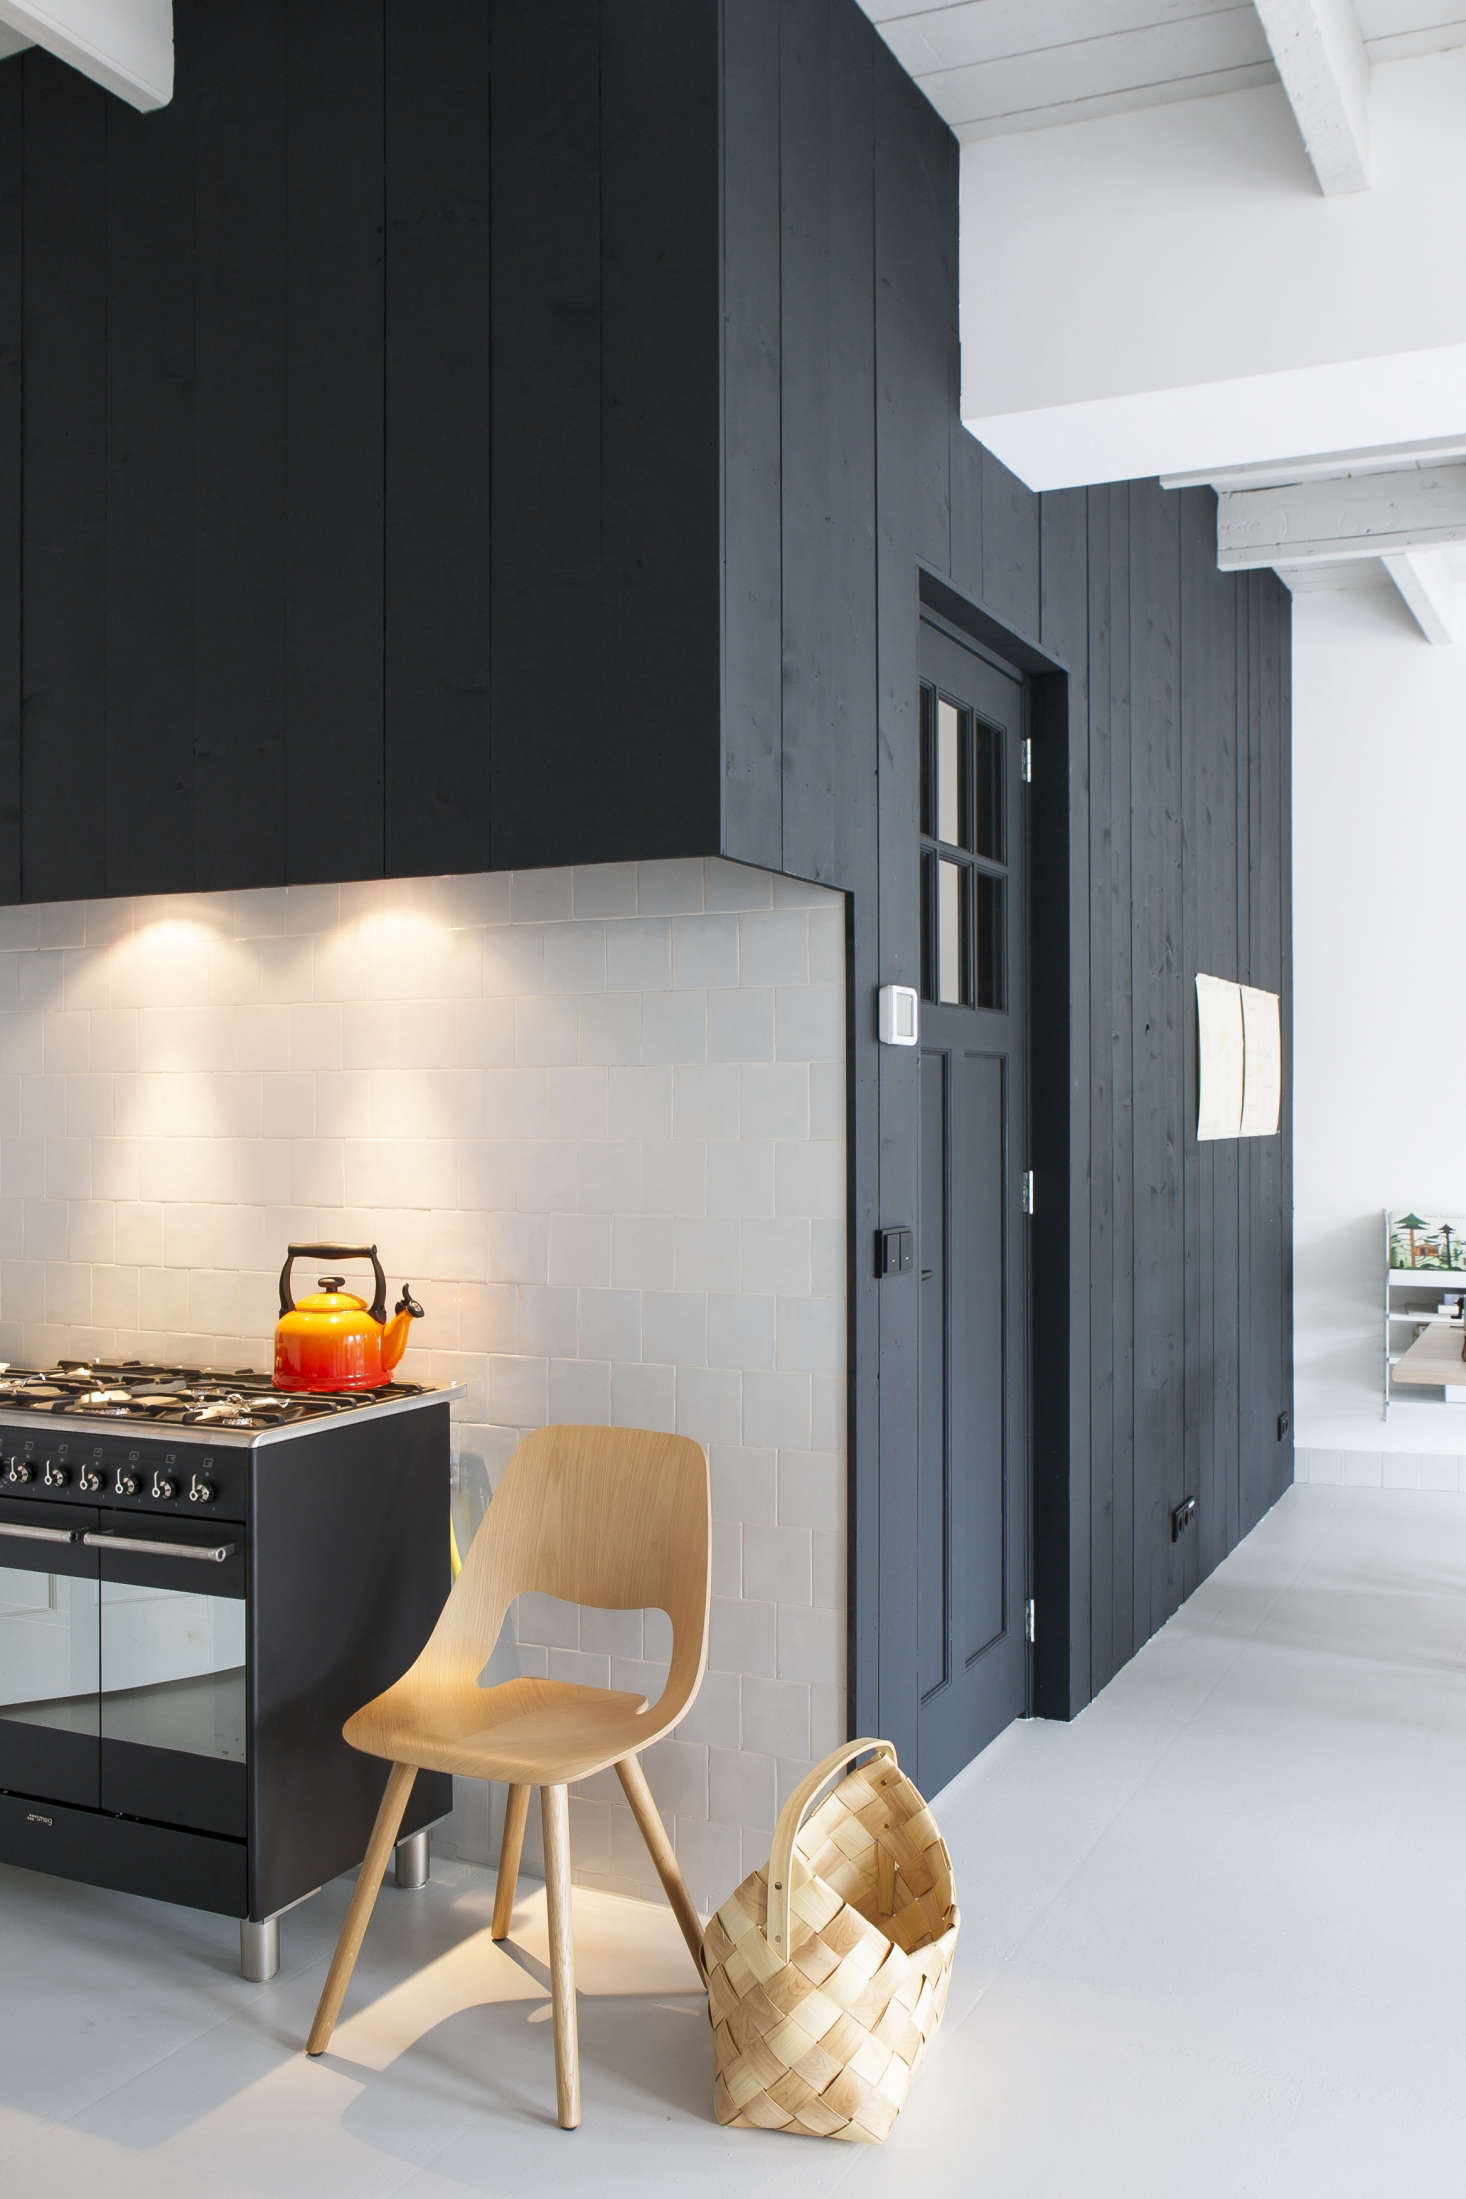 Black-stained pine paneling matches the kitchen millwork. A Vitra chair stands next to a Smeg range. The fridge (not shown) is set in a cabinet near the stove.